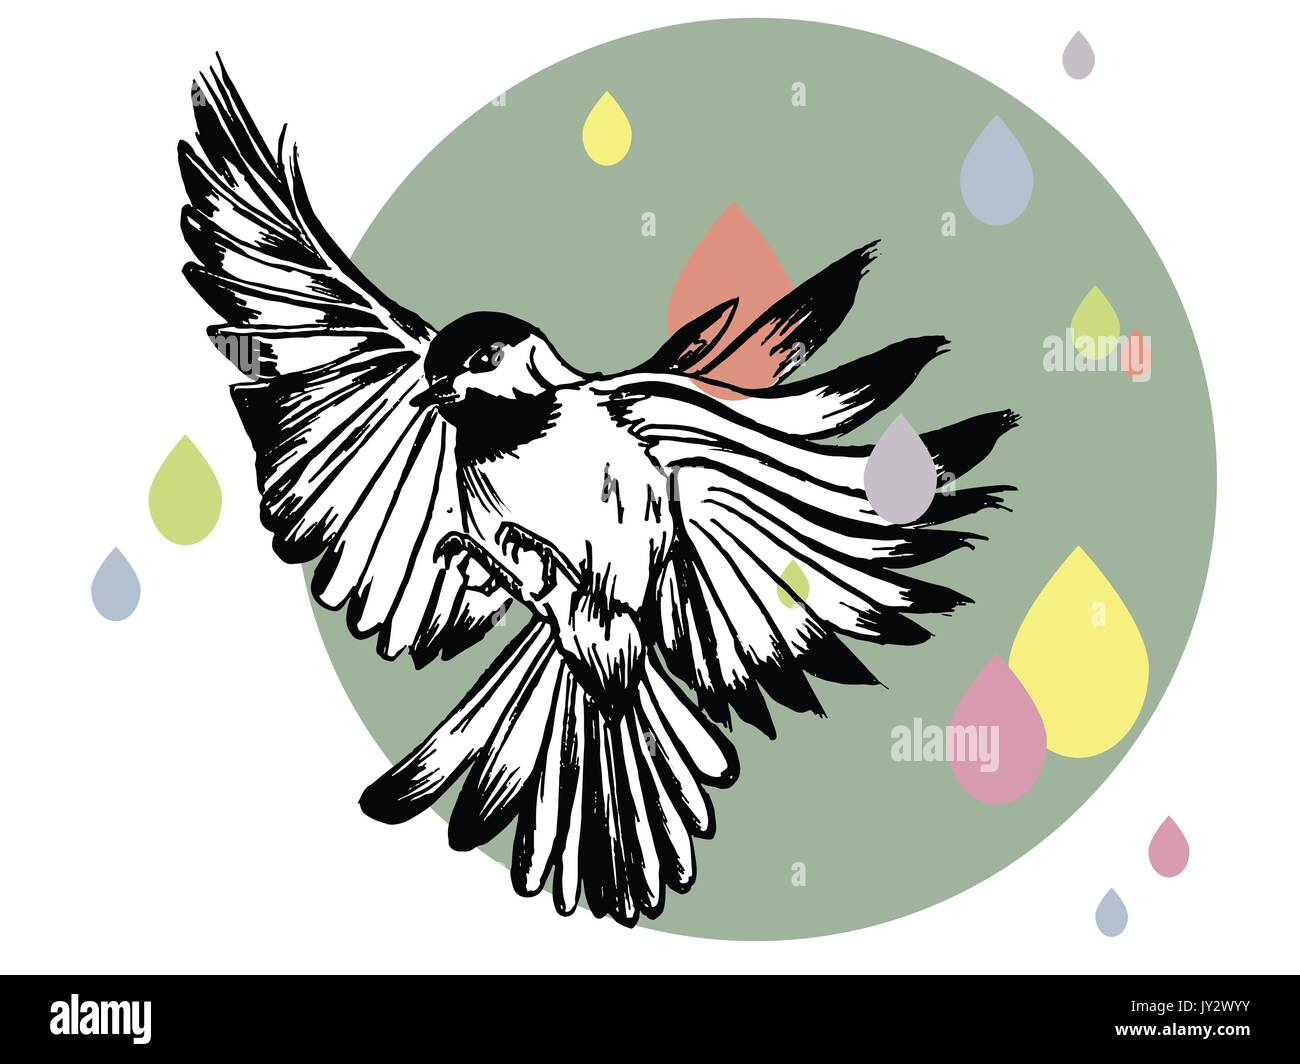 Vector Illustration Of A Hand Drawn Bird On Flat Design Grey Blue Circle And Pastel Coloured Rain The Background